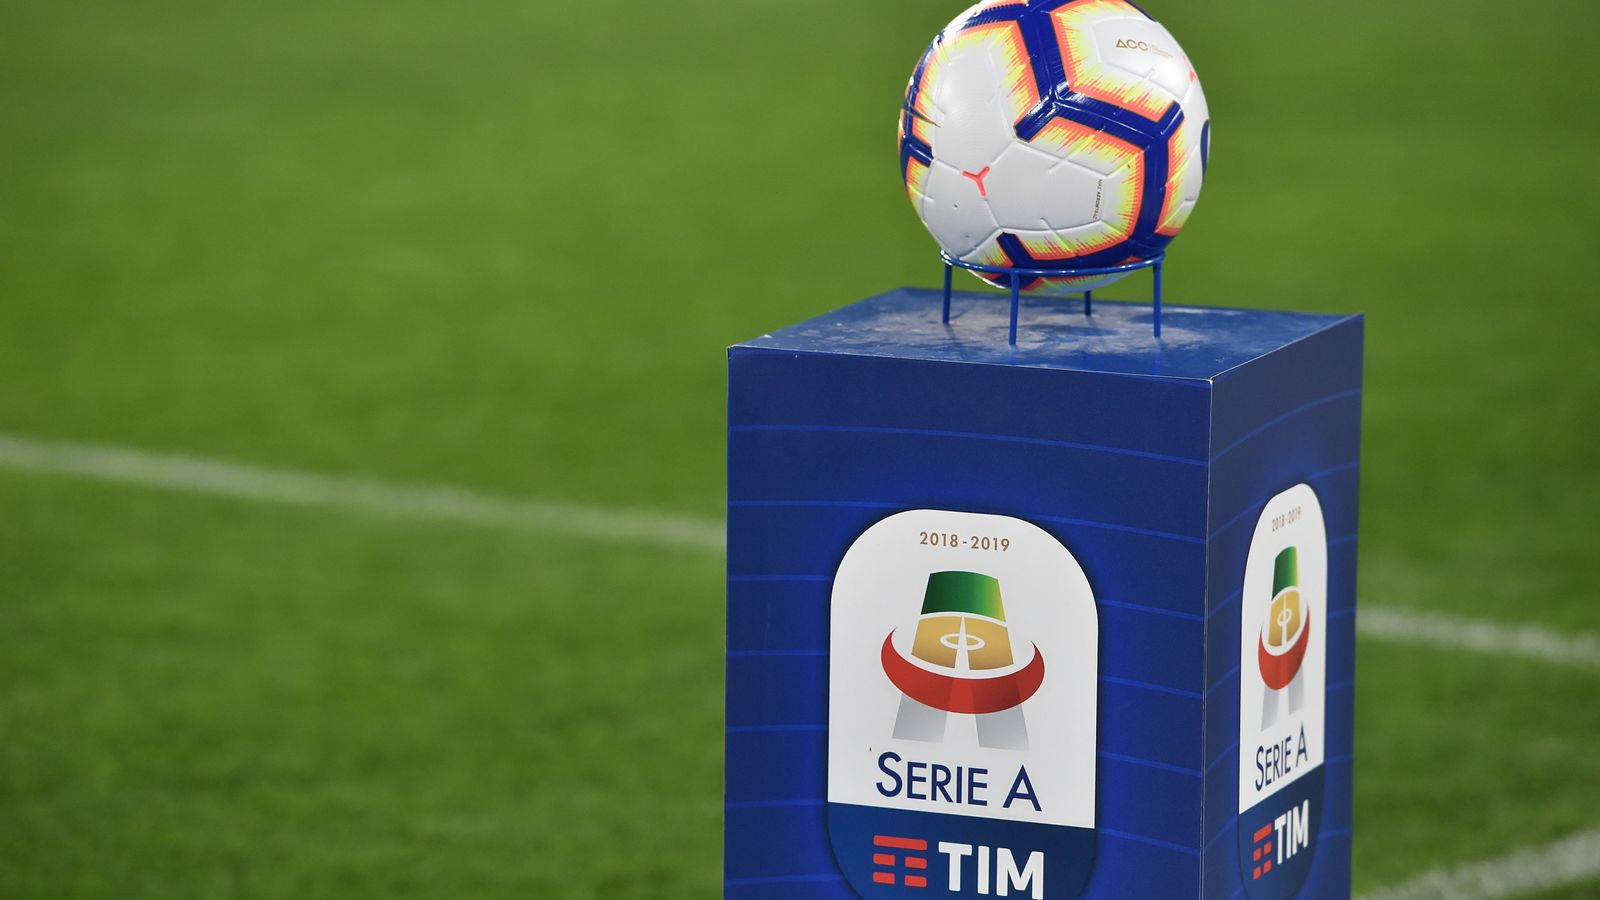 Coronavirus: Serie A restart given quarantine boost as restrictions eased